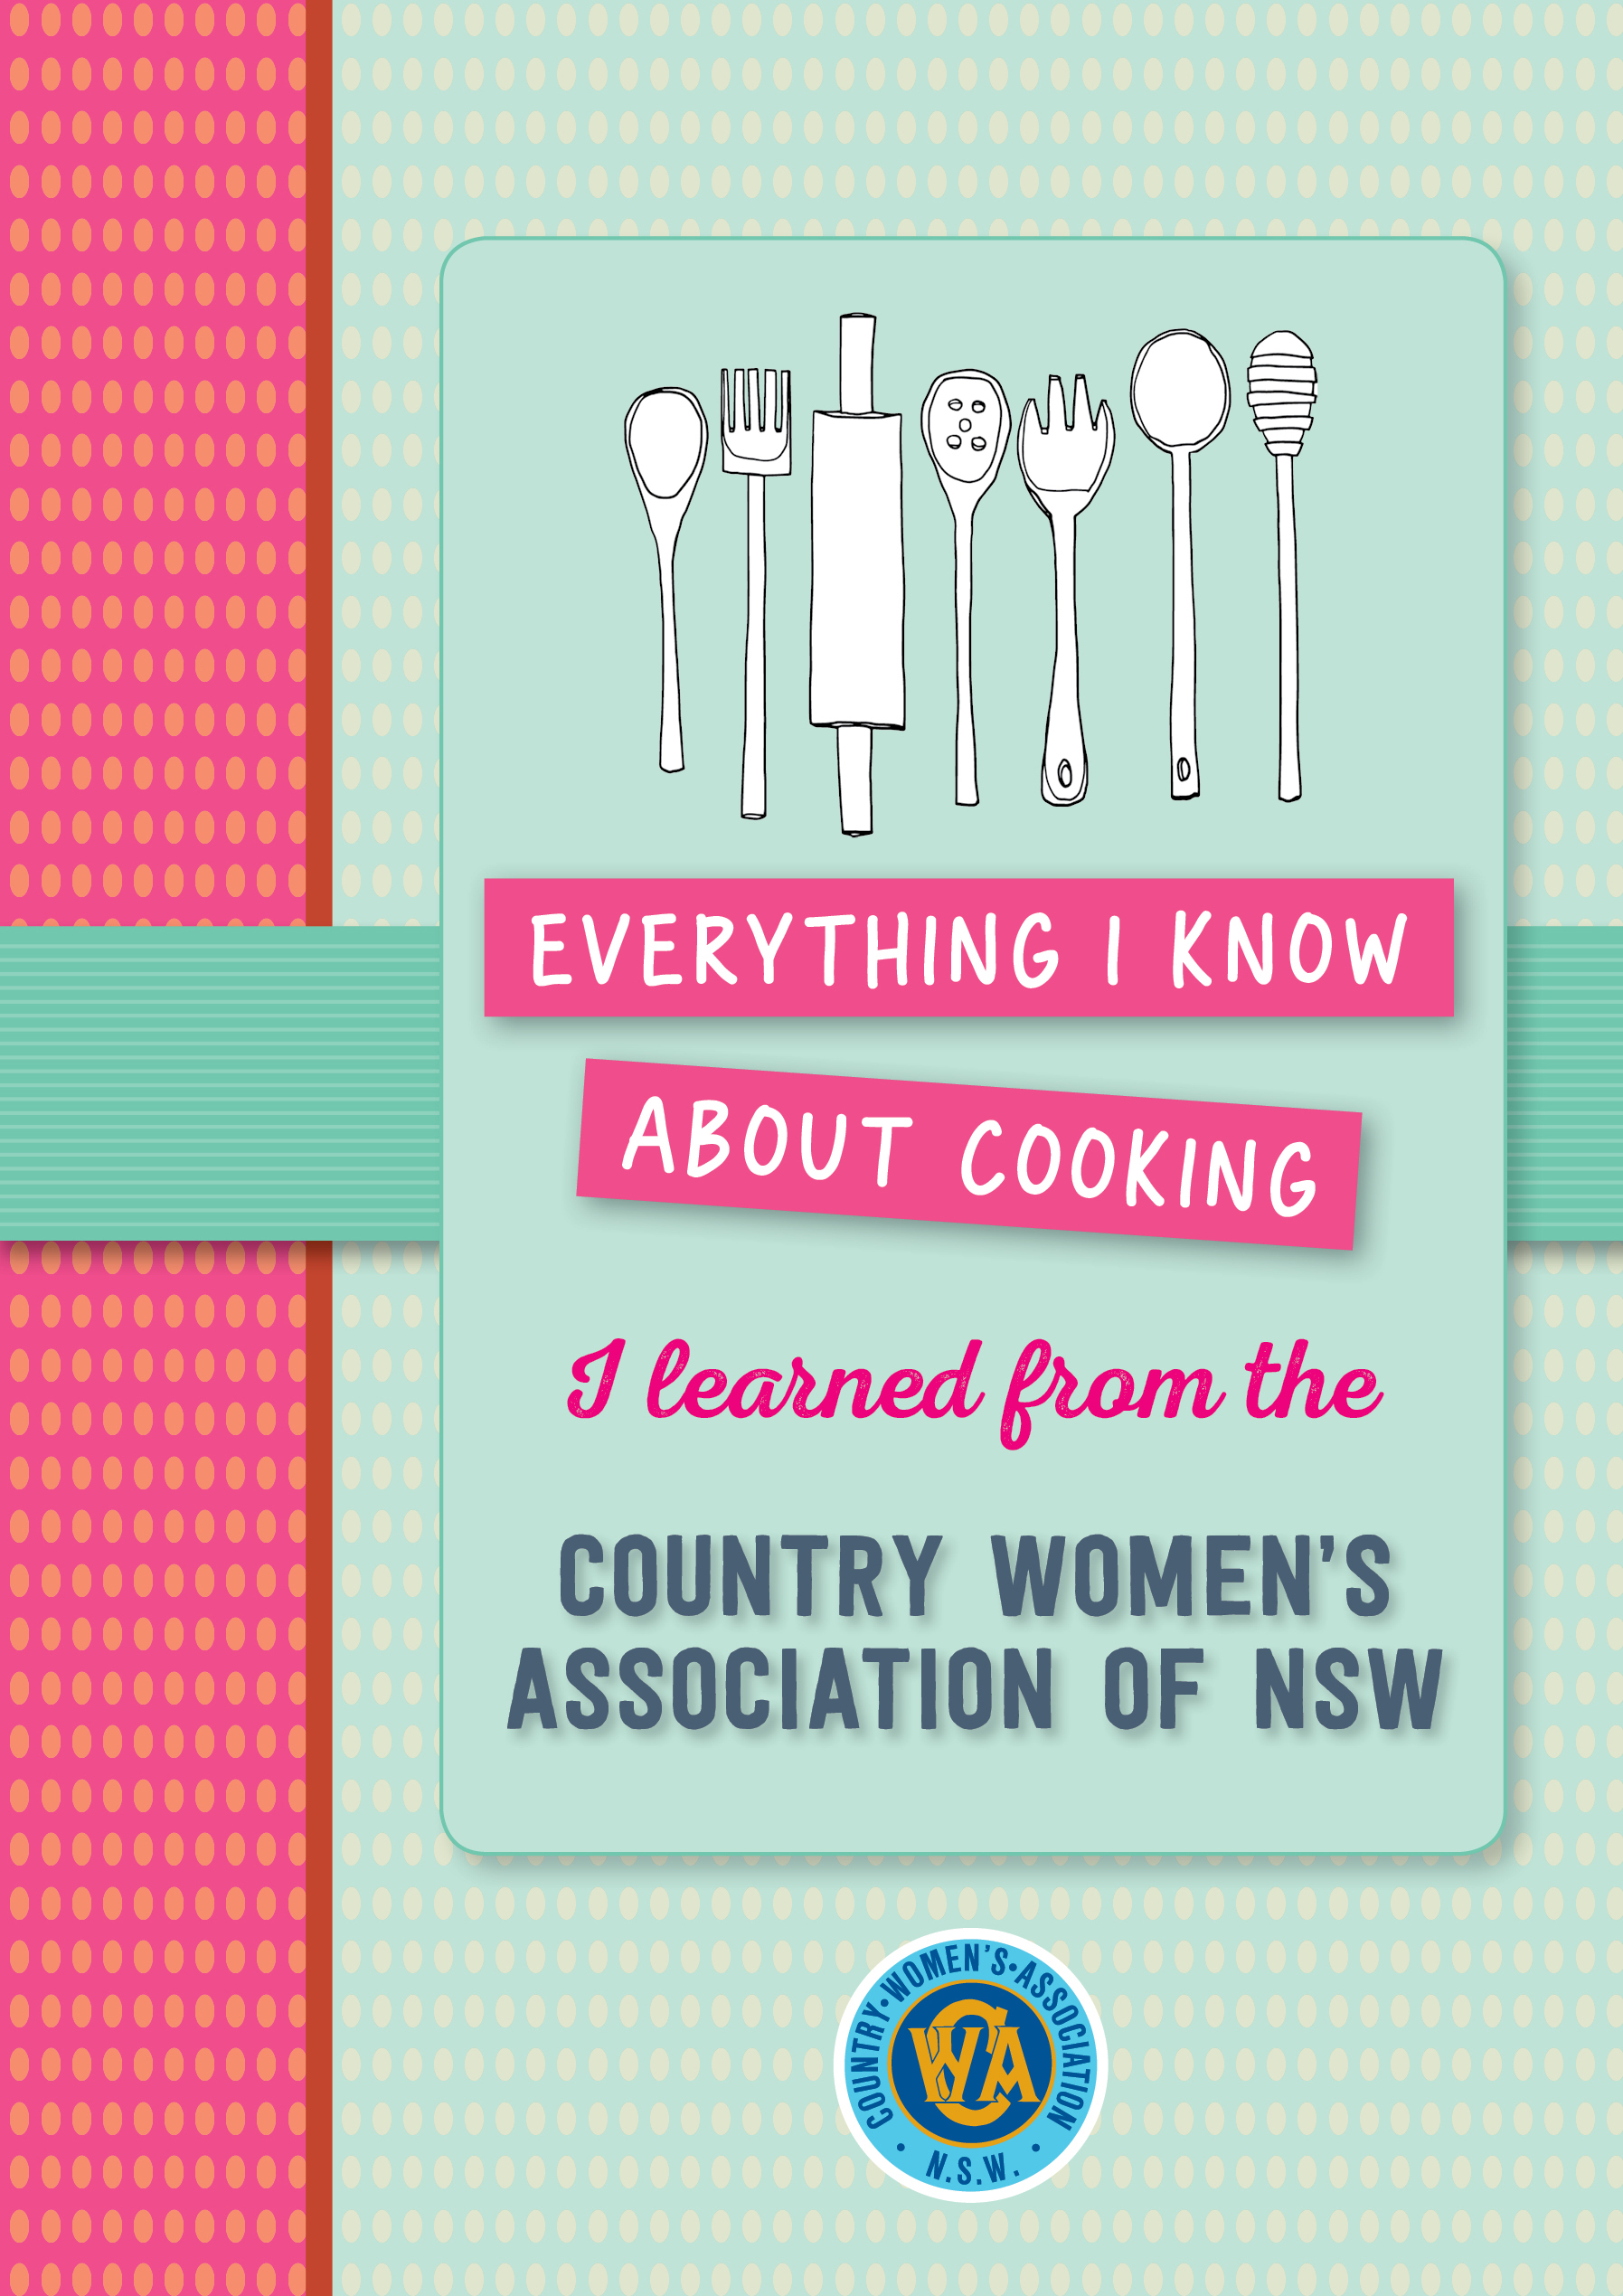 everything i know about cooking i learned from cwa cwa nsw